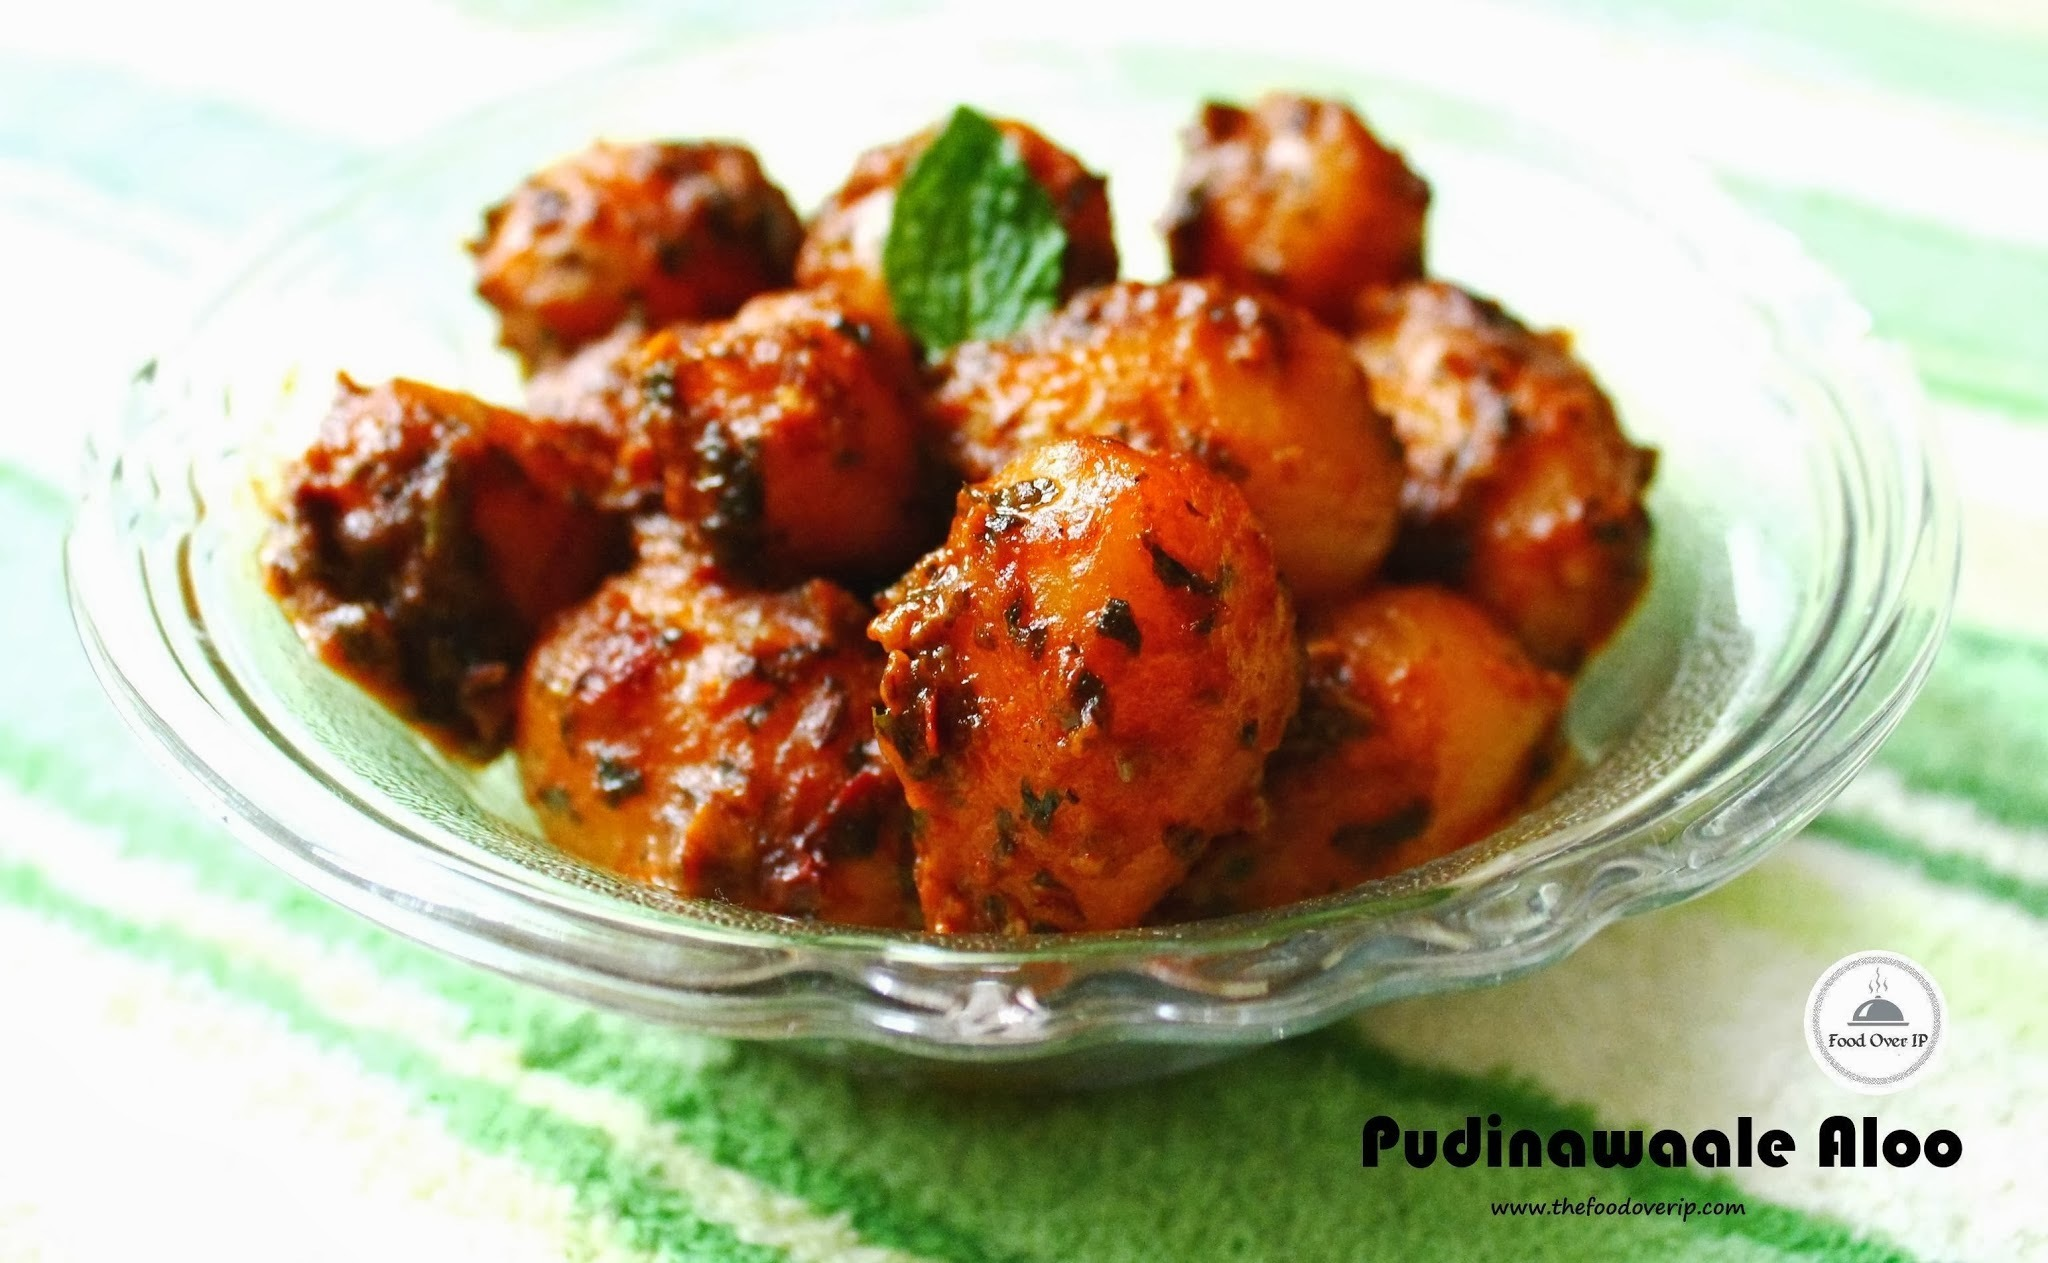 Aloo Pudina | Baby Potatoes simmered in a spiced mint and fried onion sauce